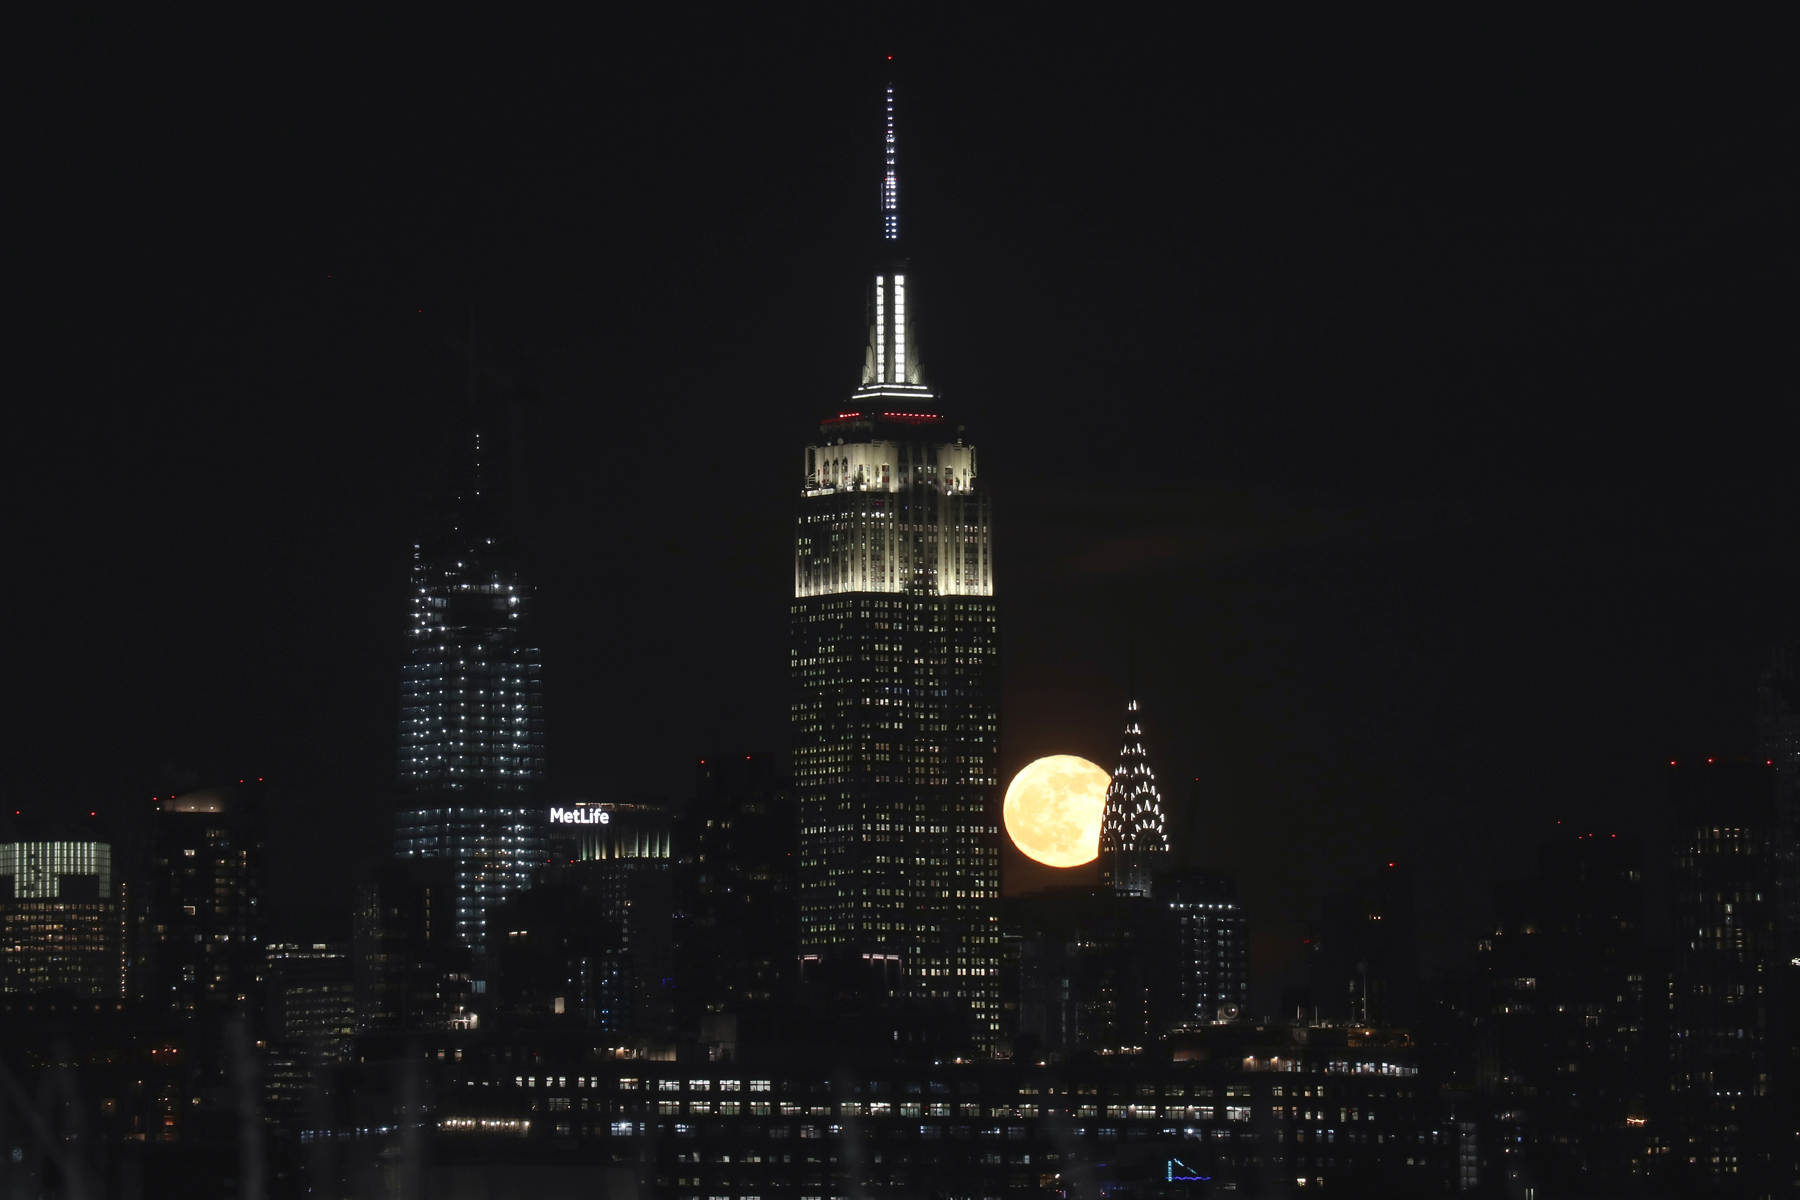 The full Cold Moon rises behind the Empire State Building and Chrysler Building in New York City on December 12, 2019 as seen from Jersey City, New Jersey.